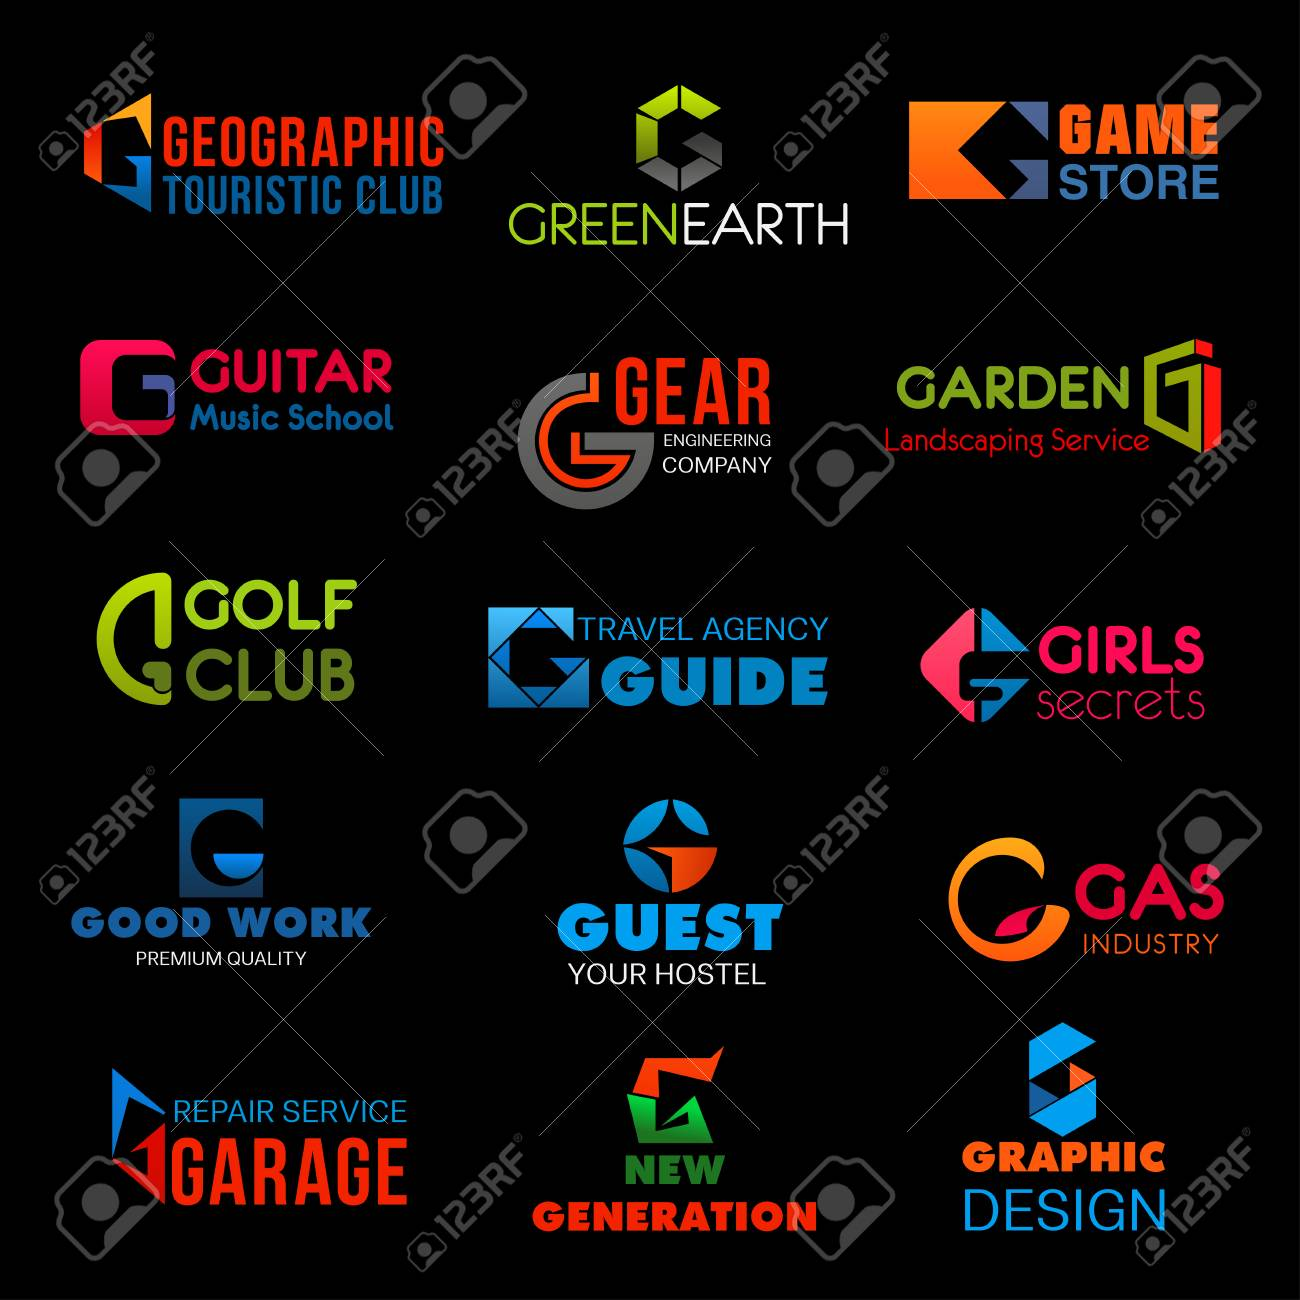 Letter G brand identity or company corporate design in tourism club or green earth ecology and game store. Vector G symbol of engineering, golf club or hostel and hotel and graphic design agency - 108294871